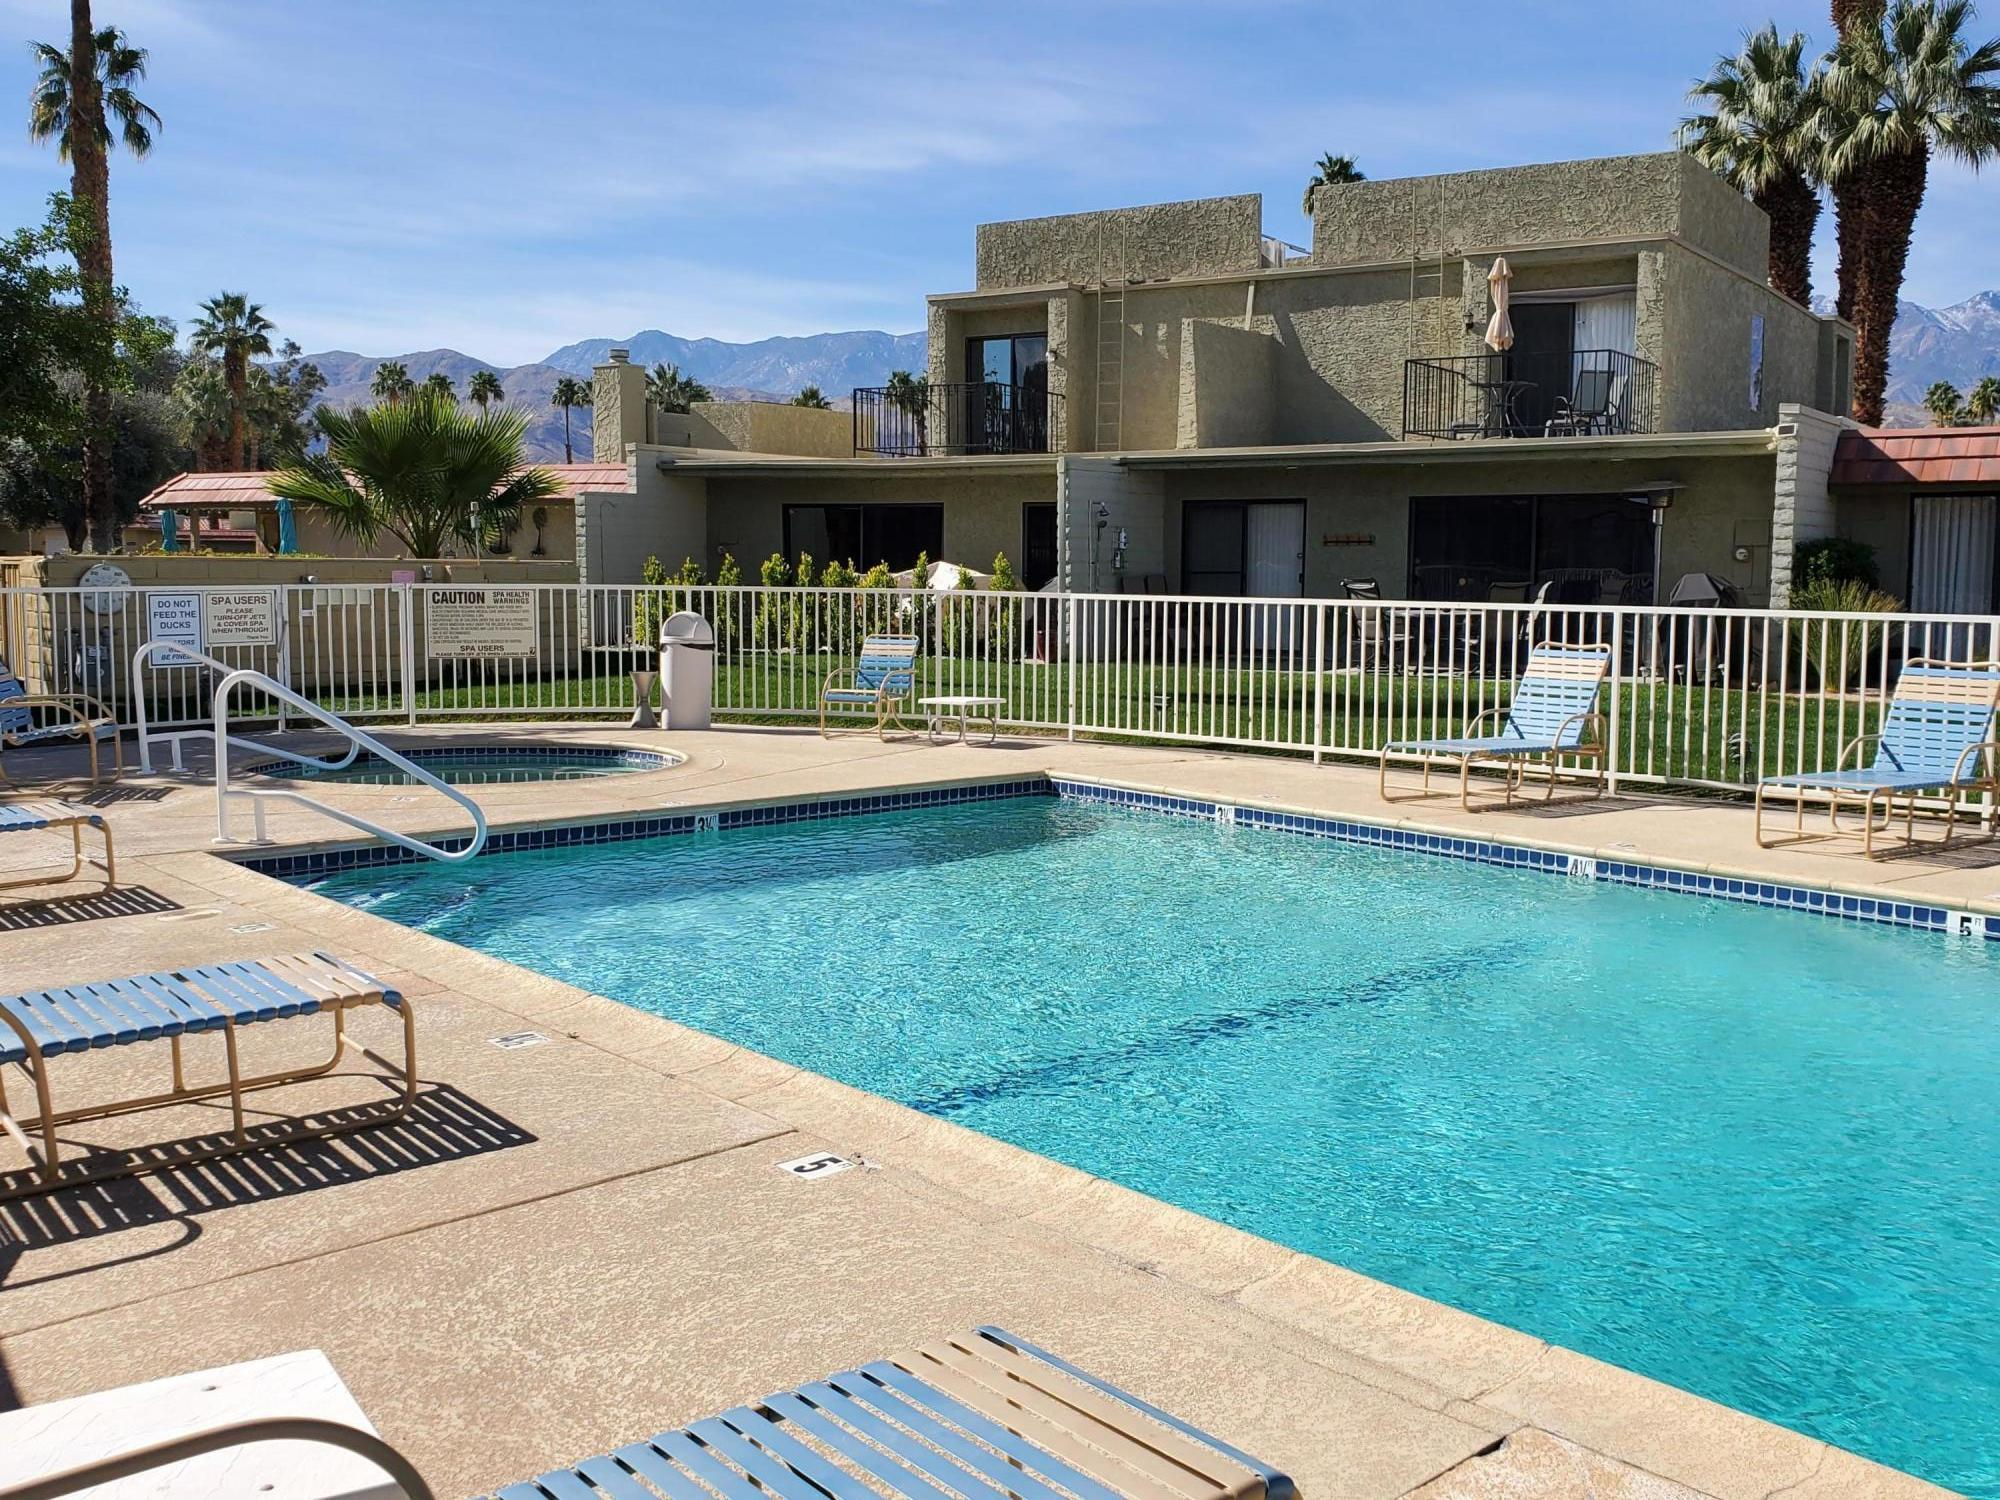 Conveniently and centrally located inside the gated Cathedral Canyon Country Club, this beautiful Townhome style condo is very close to the new Agua Caliente Casino, to downtown Palm Springs, as well as to the East Valley cities of Rancho Mirage and Palm Desert. This home features 1,505 square feet of spacious living on two floors. The two large upstairs bedrooms, each have their own separate baths, walk-in closets, and views. On the main downstairs floor, you'll appreciate the open living room, dining area with wet bar, and the galley kitchen. A separate guest bath, and the laundry area are also located on the main floor. From the very open and light living room, enjoy the view of the grassy common area and the swimming pool. Don't hesitate on this opportunity. You will certainly appreciate and enjoy the desert resort environment, proximity to all the special venues of the desert, and all the amenities offered in the home and the community.